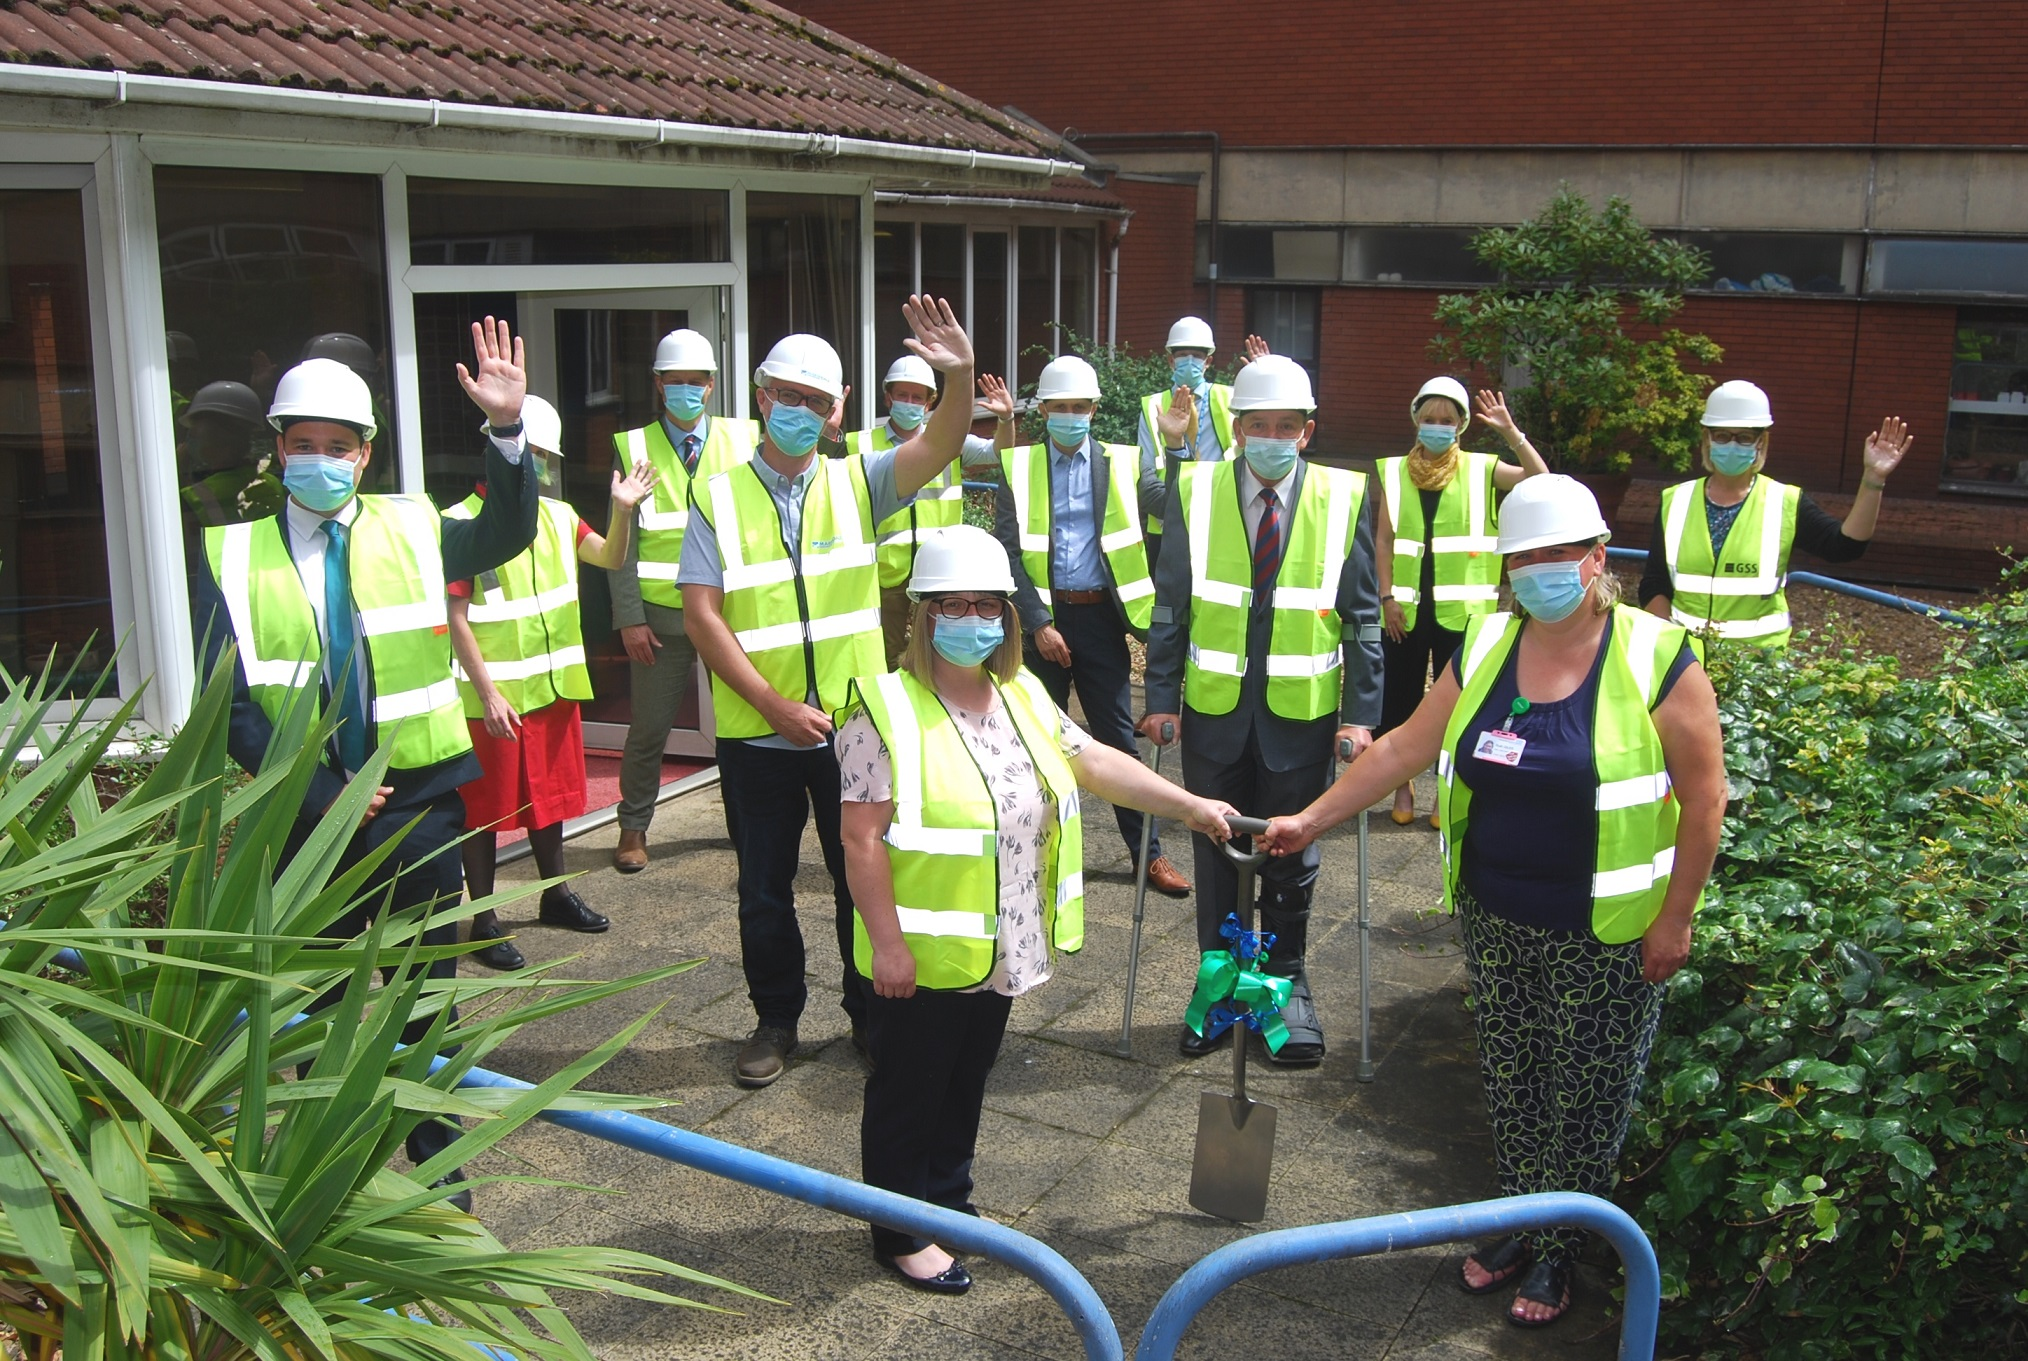 Work Begins on Macmillan's New Cancer Centre at Kettering General Hospital